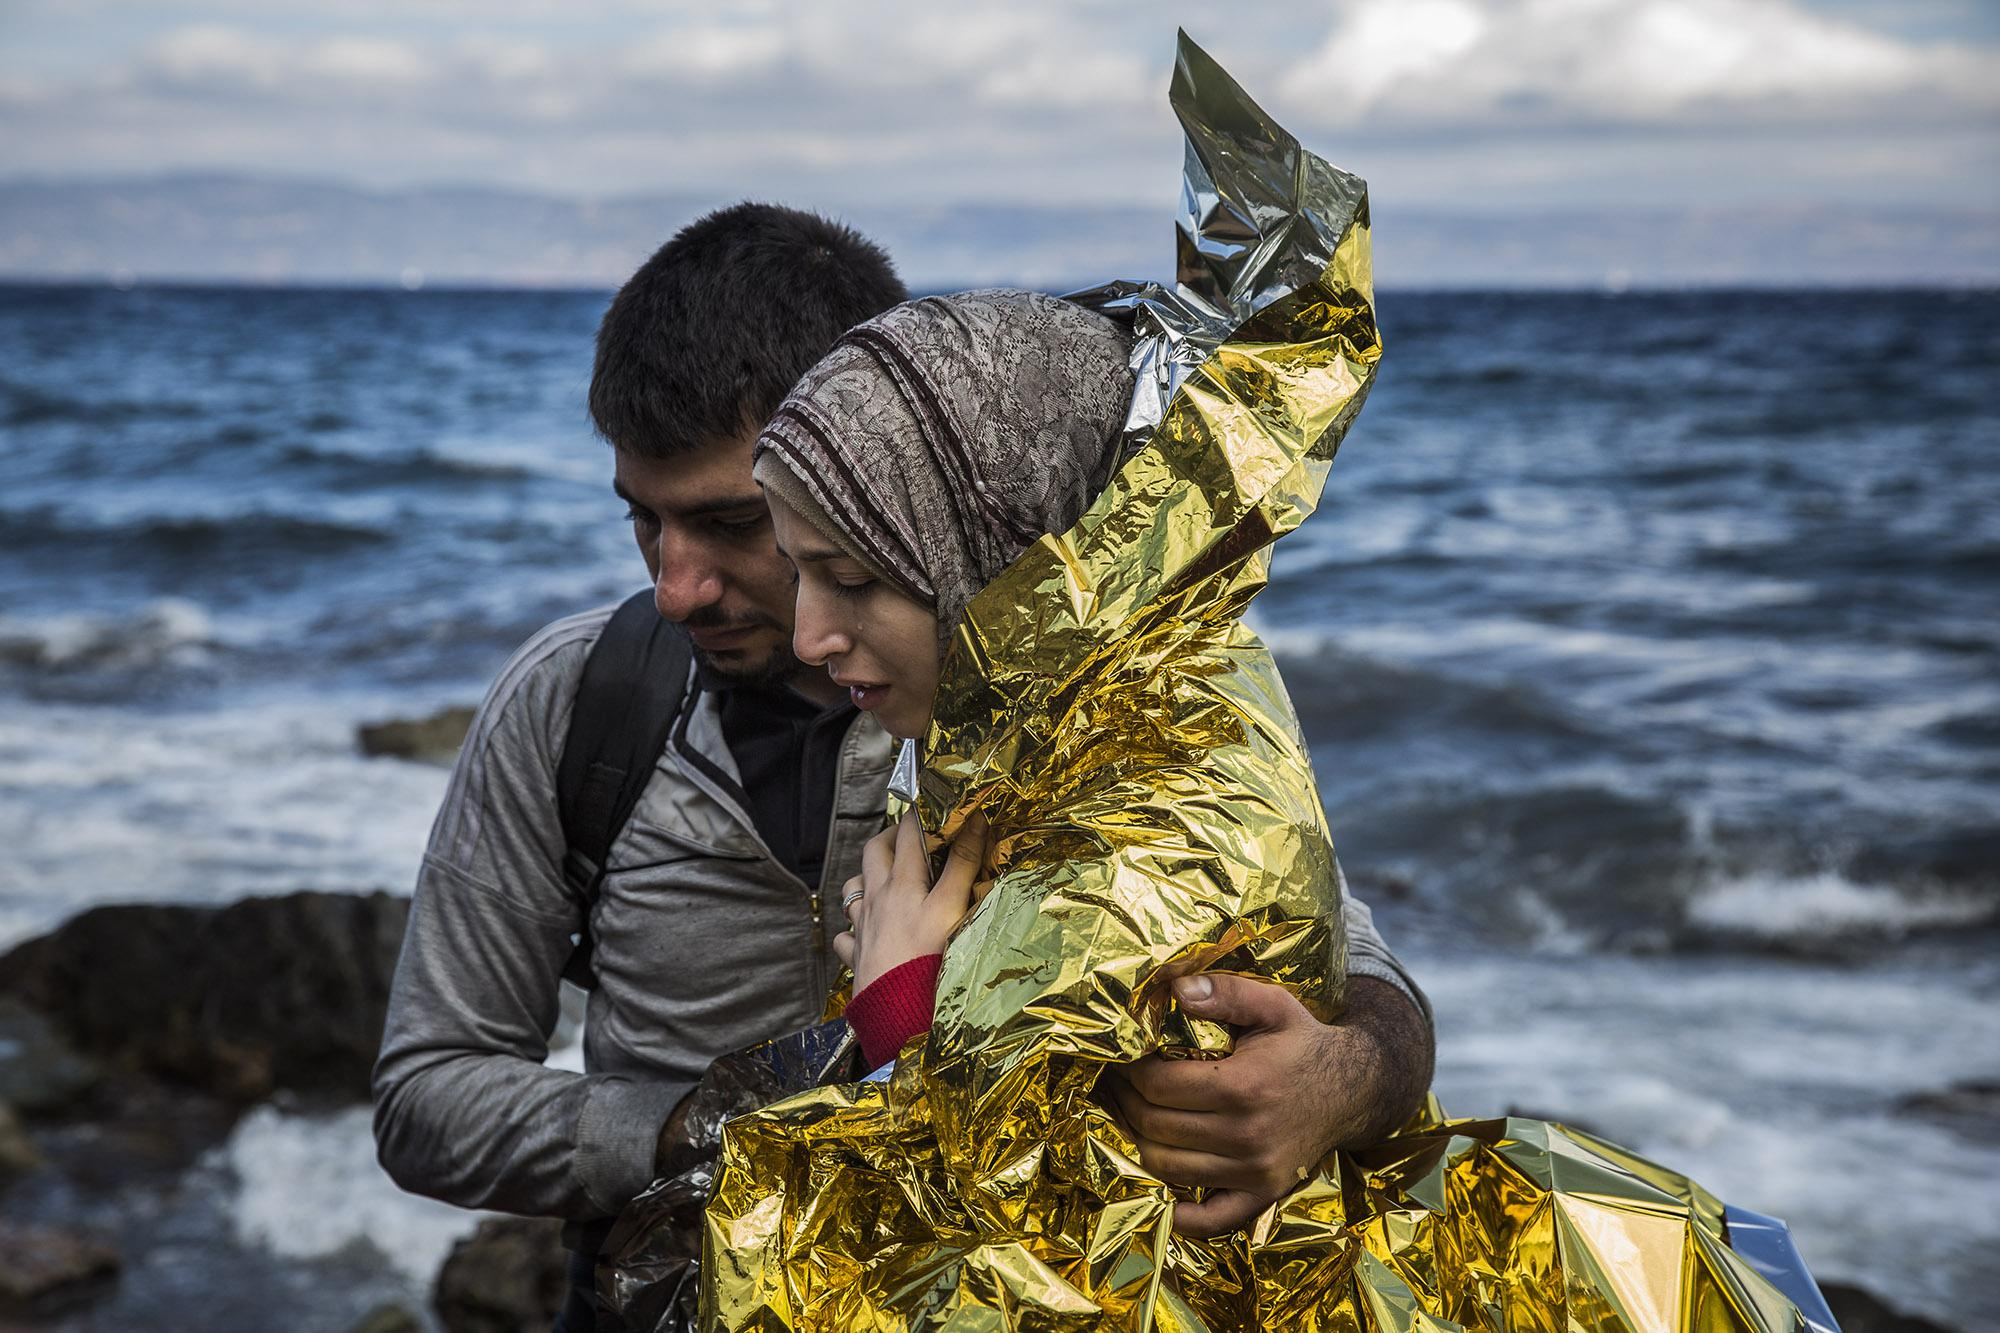 A couple embraces right after after crossing the Aegean sea aboard a rubber boat, with other refugees from the Middle East, from the Turkish coast to the northeastern Greek island of Lesbos, on Wednesday, Sept. 30, 2015. The International Organization for Migration said that week a record number of people had crossed the Mediterranean into Europe, topping a half a million, with some 388,000 entering via Greece. (© Santi Palacios)